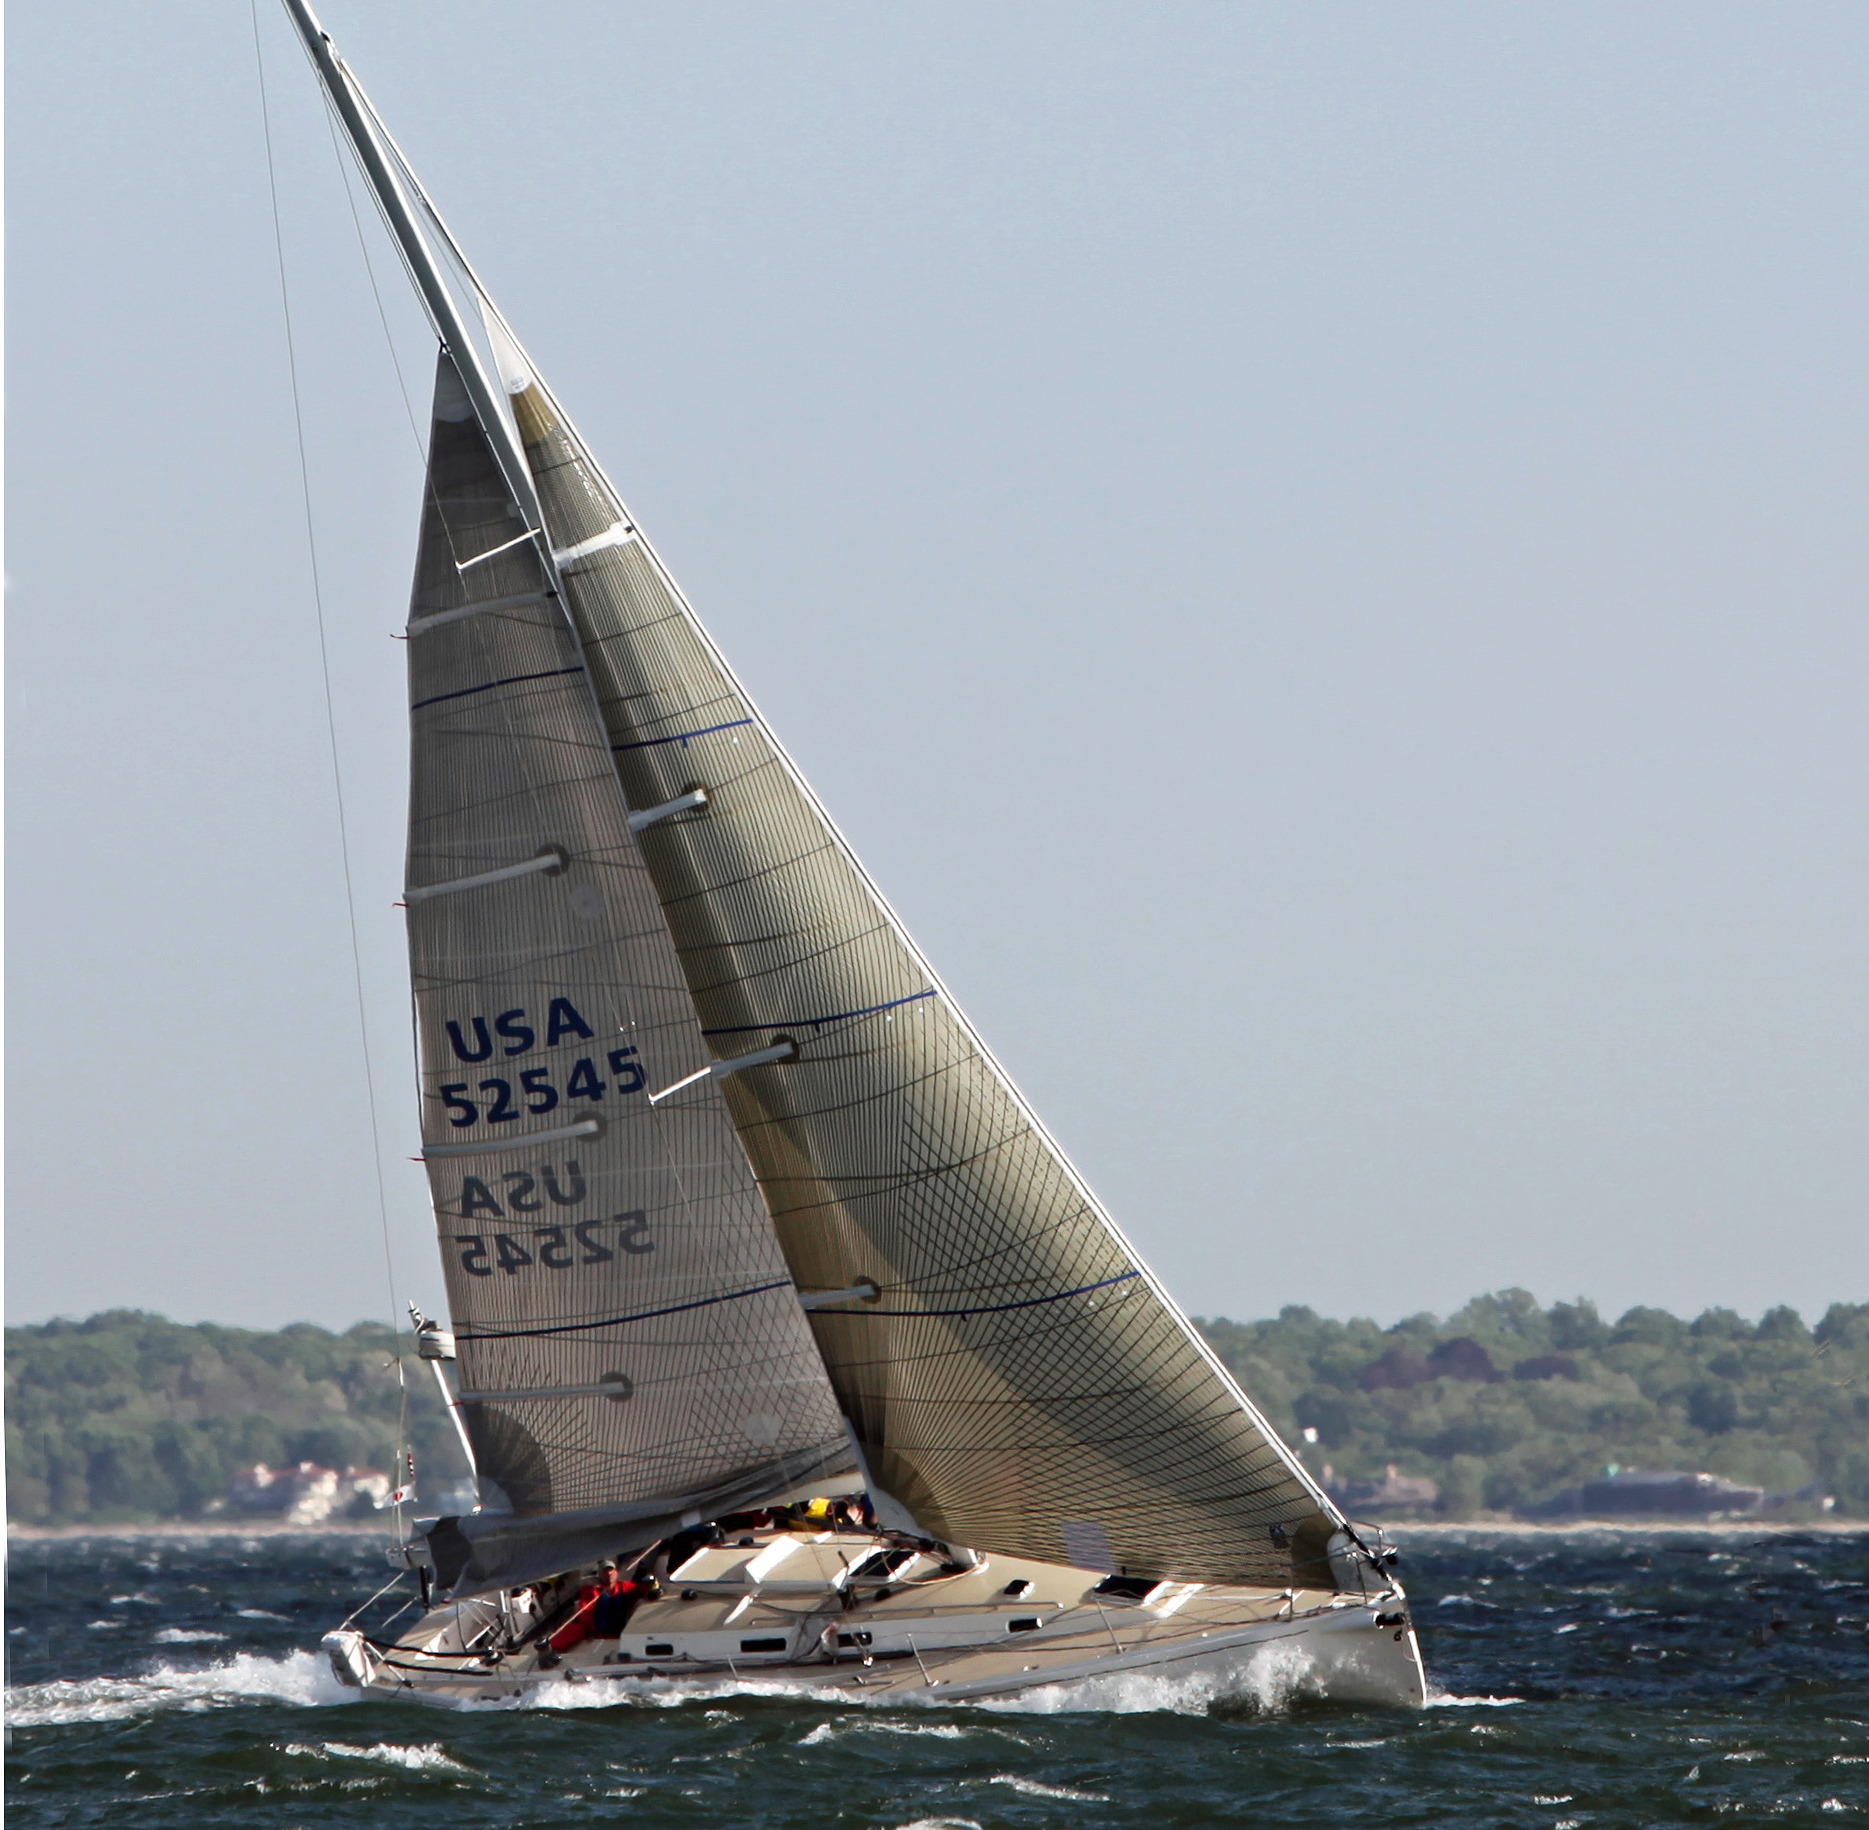 The J/133 Antidote with a double-reefed main and No. 4 genoa going to windward in 40 knots of wind. Allen Clark image/www.photoboat.com